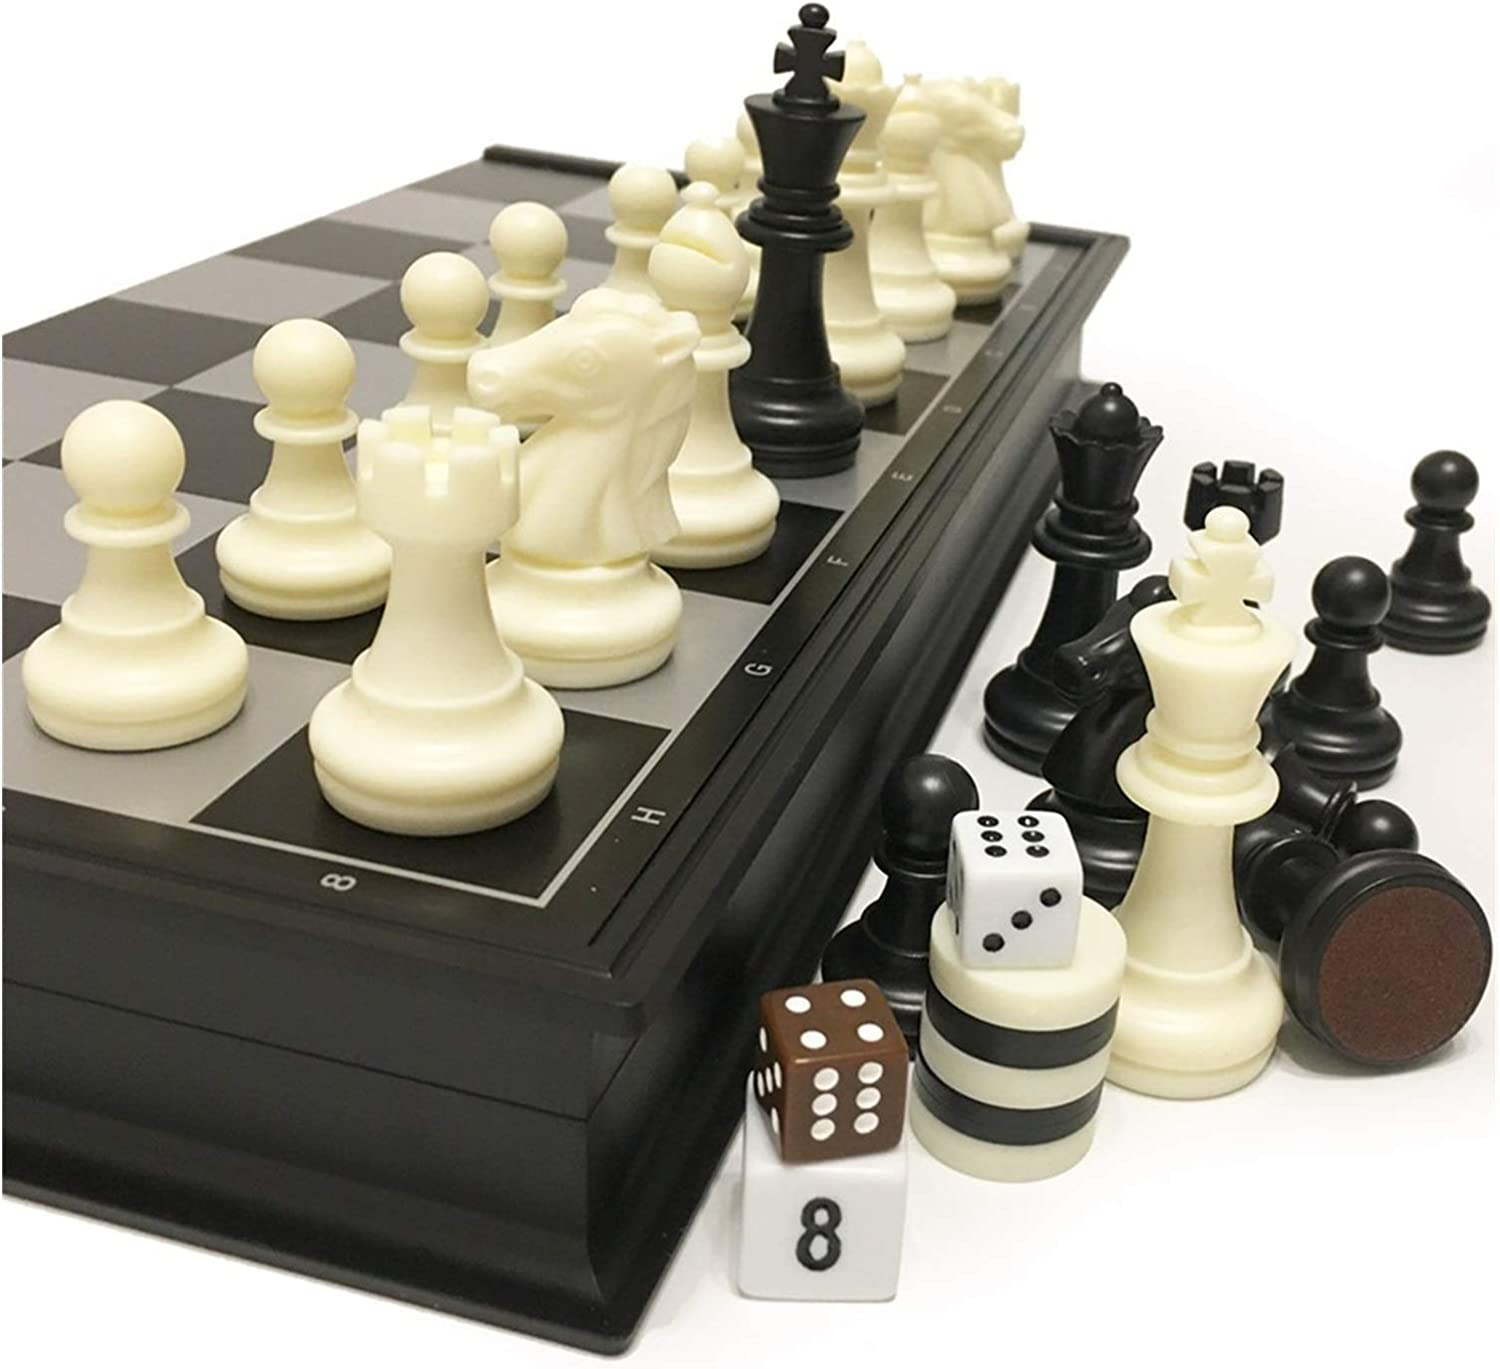 ZZ ZH Chess and Checkers Backgammon Limited time trial price Che 1 Bombing new work 3 Plastic in